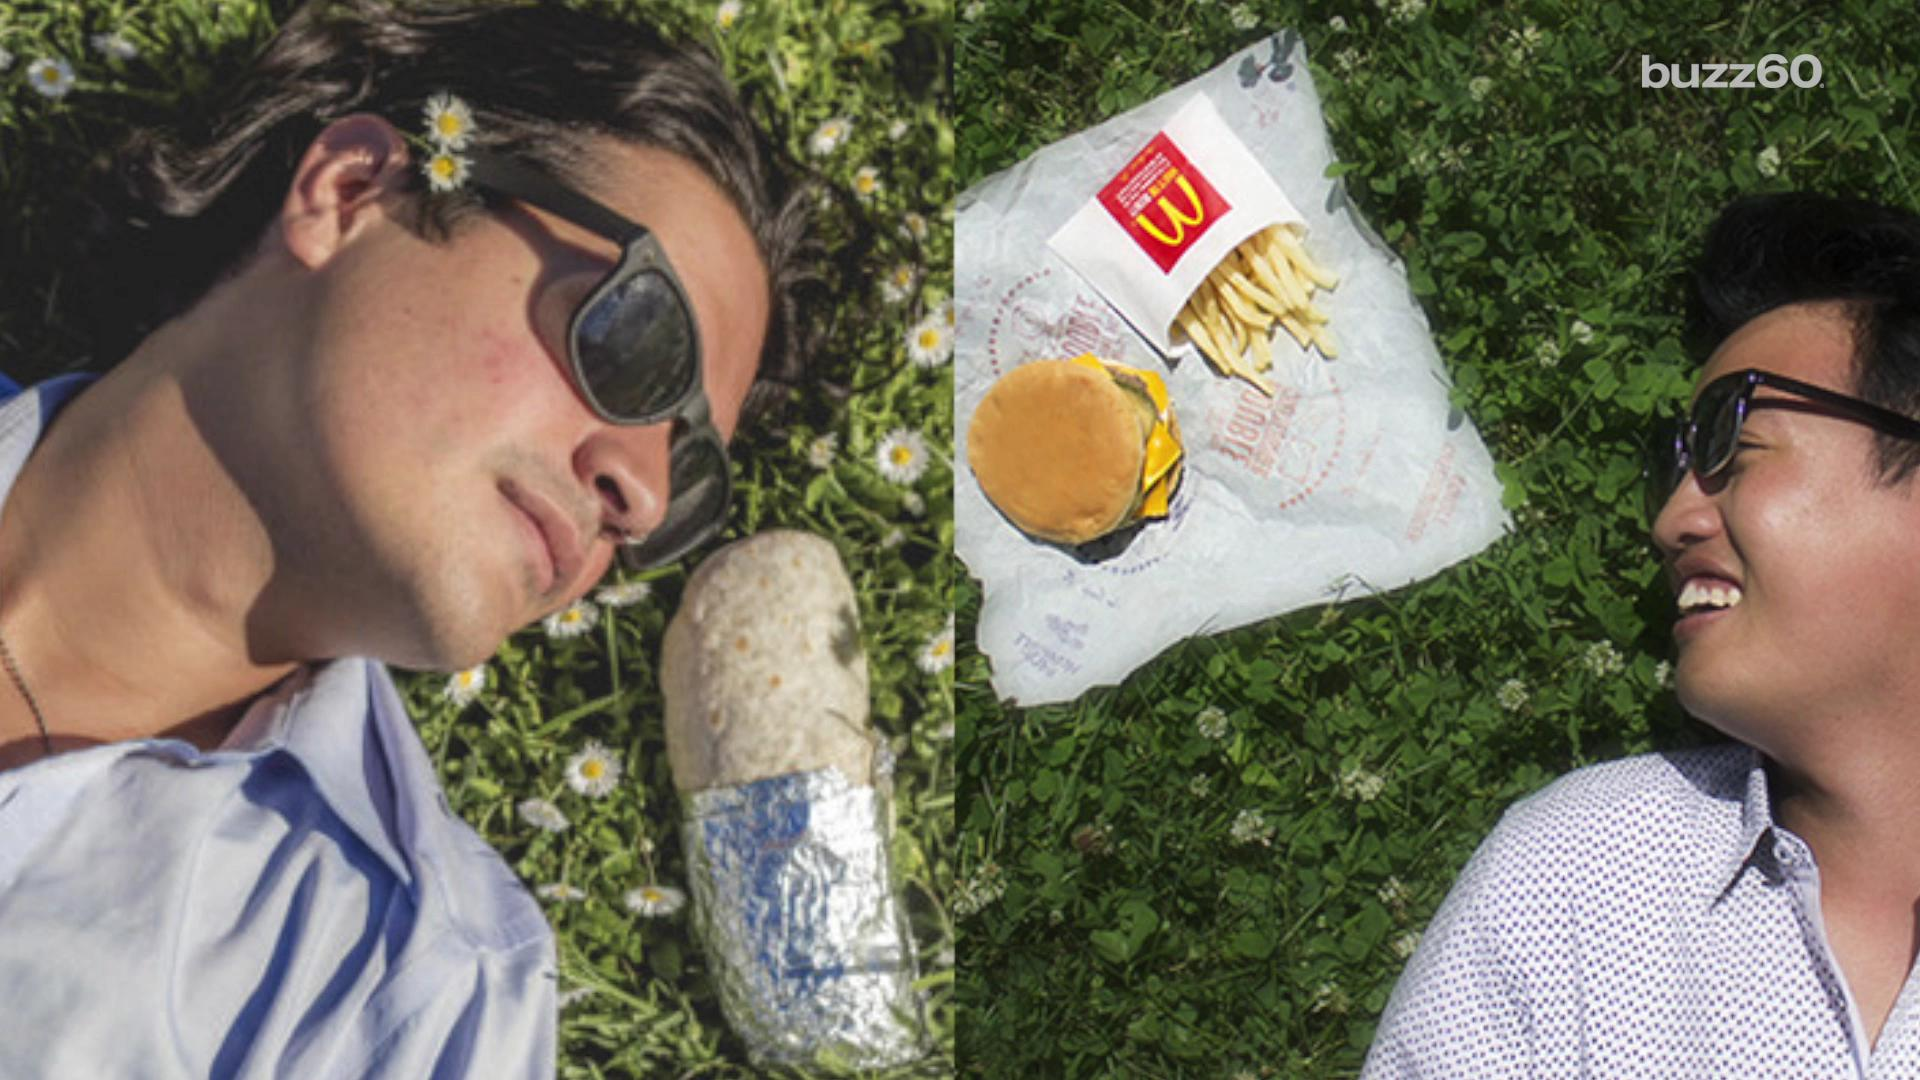 McDonald's apologizes for plagiarizing viral burrito engagement photos